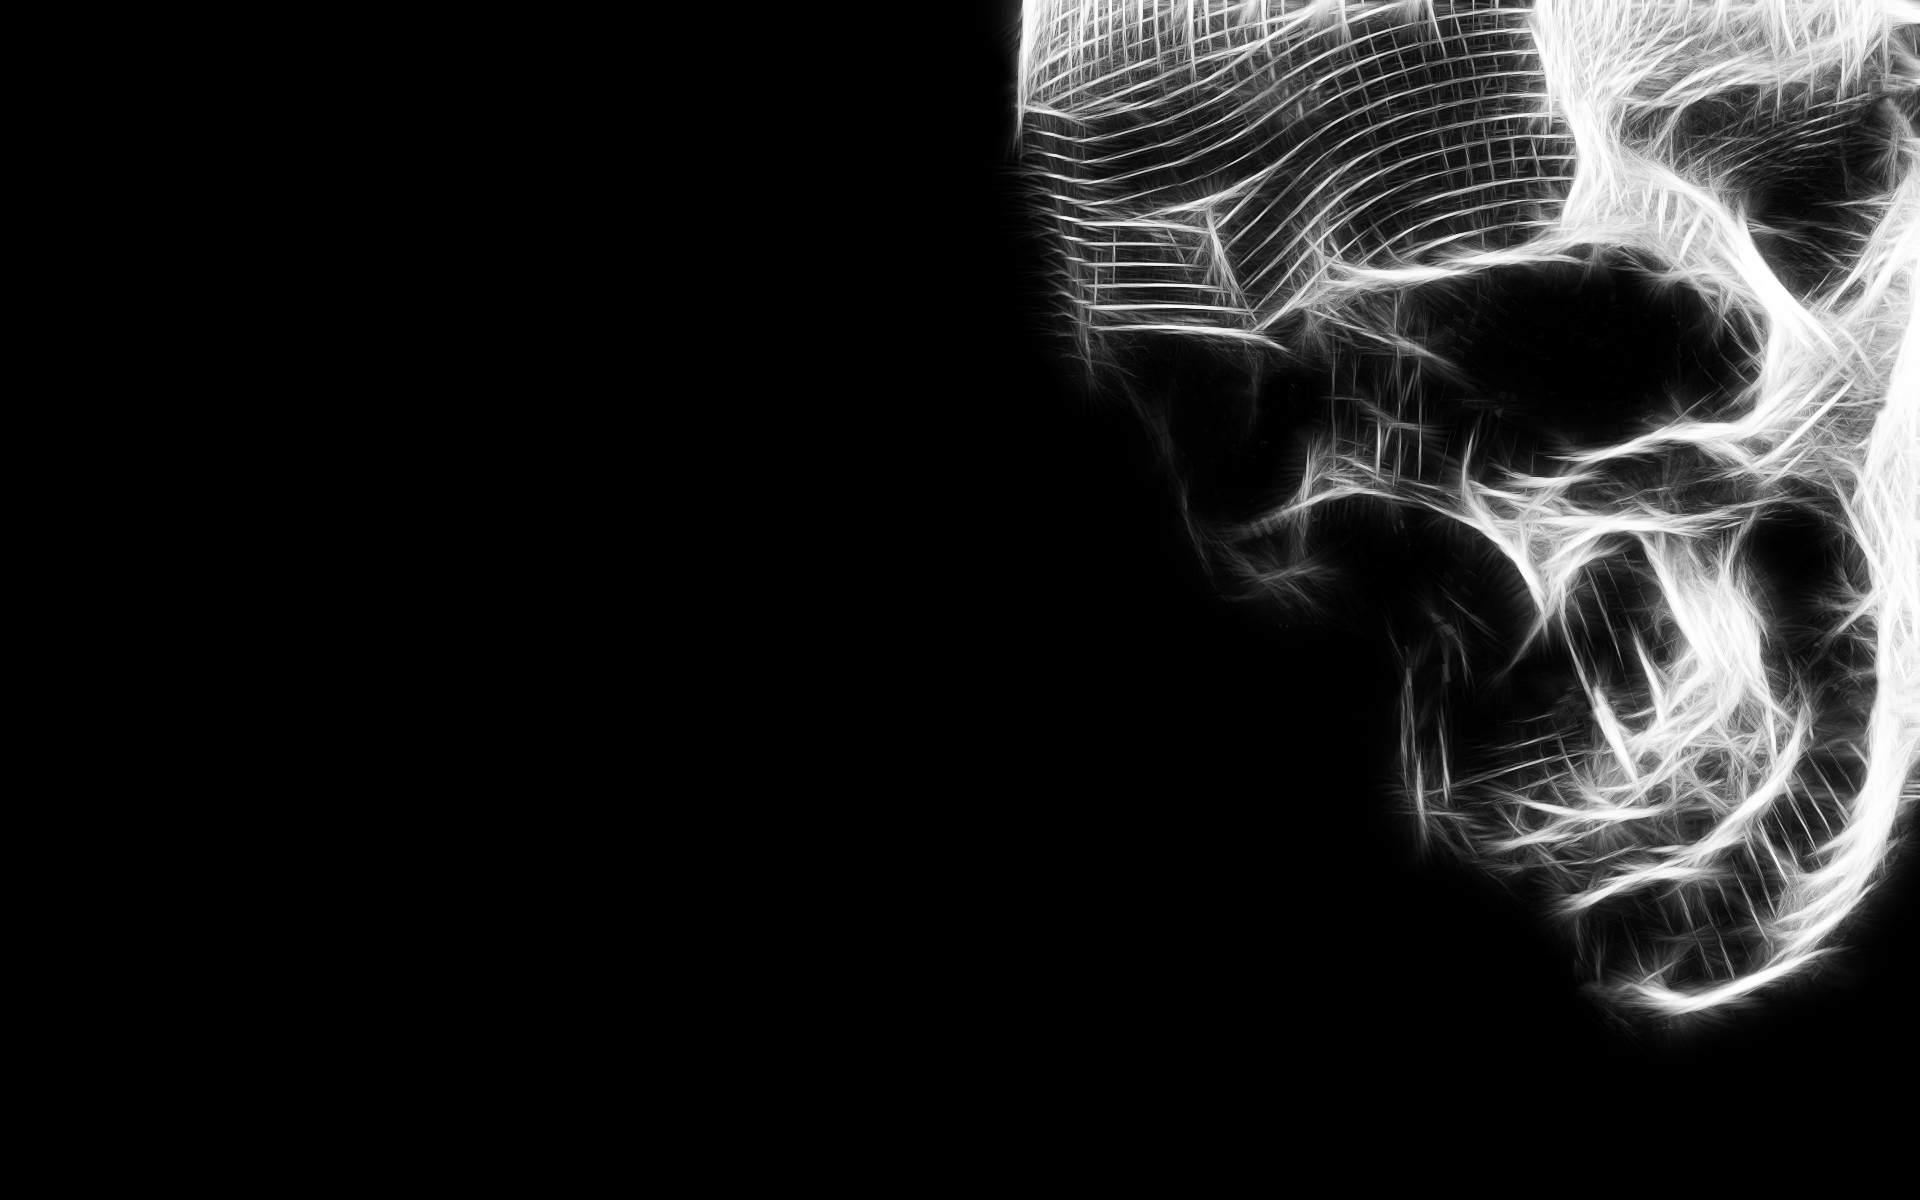 Cool HD Skull Black And White 3368 1920x1200px - HD Wallpaper